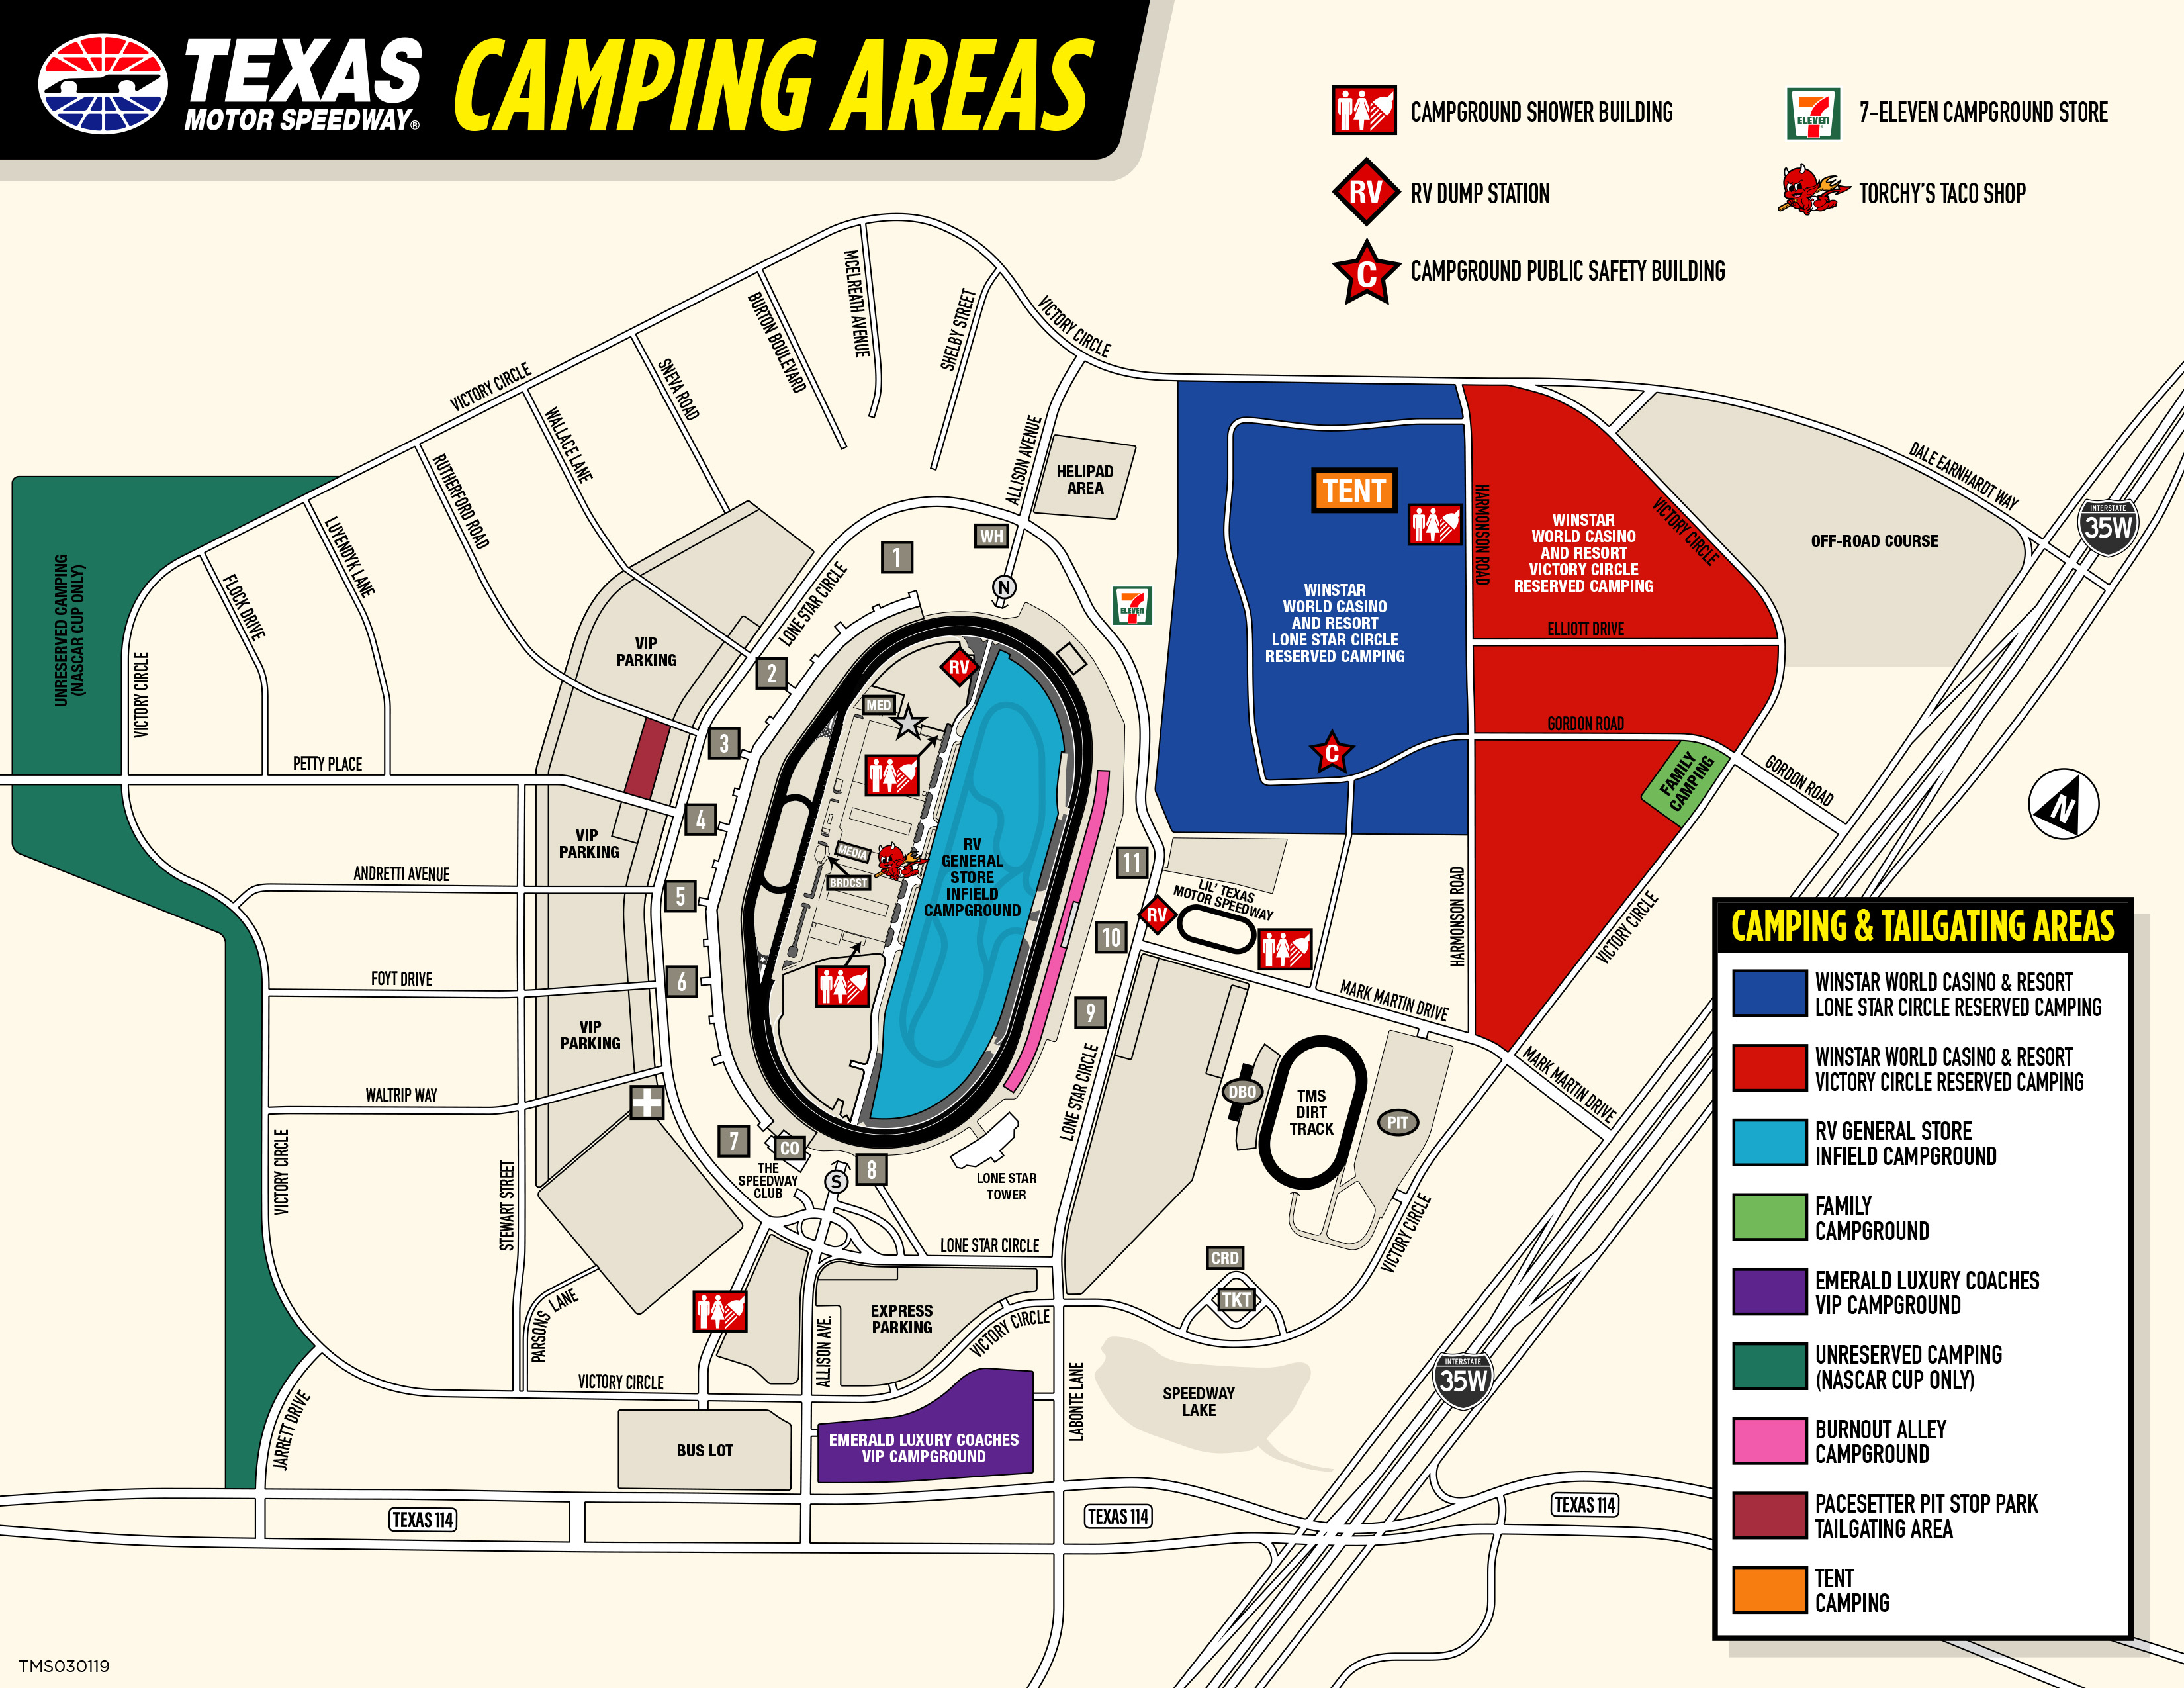 Winstar World Casino And Resort Reserved Camping - Casinos In Texas Map